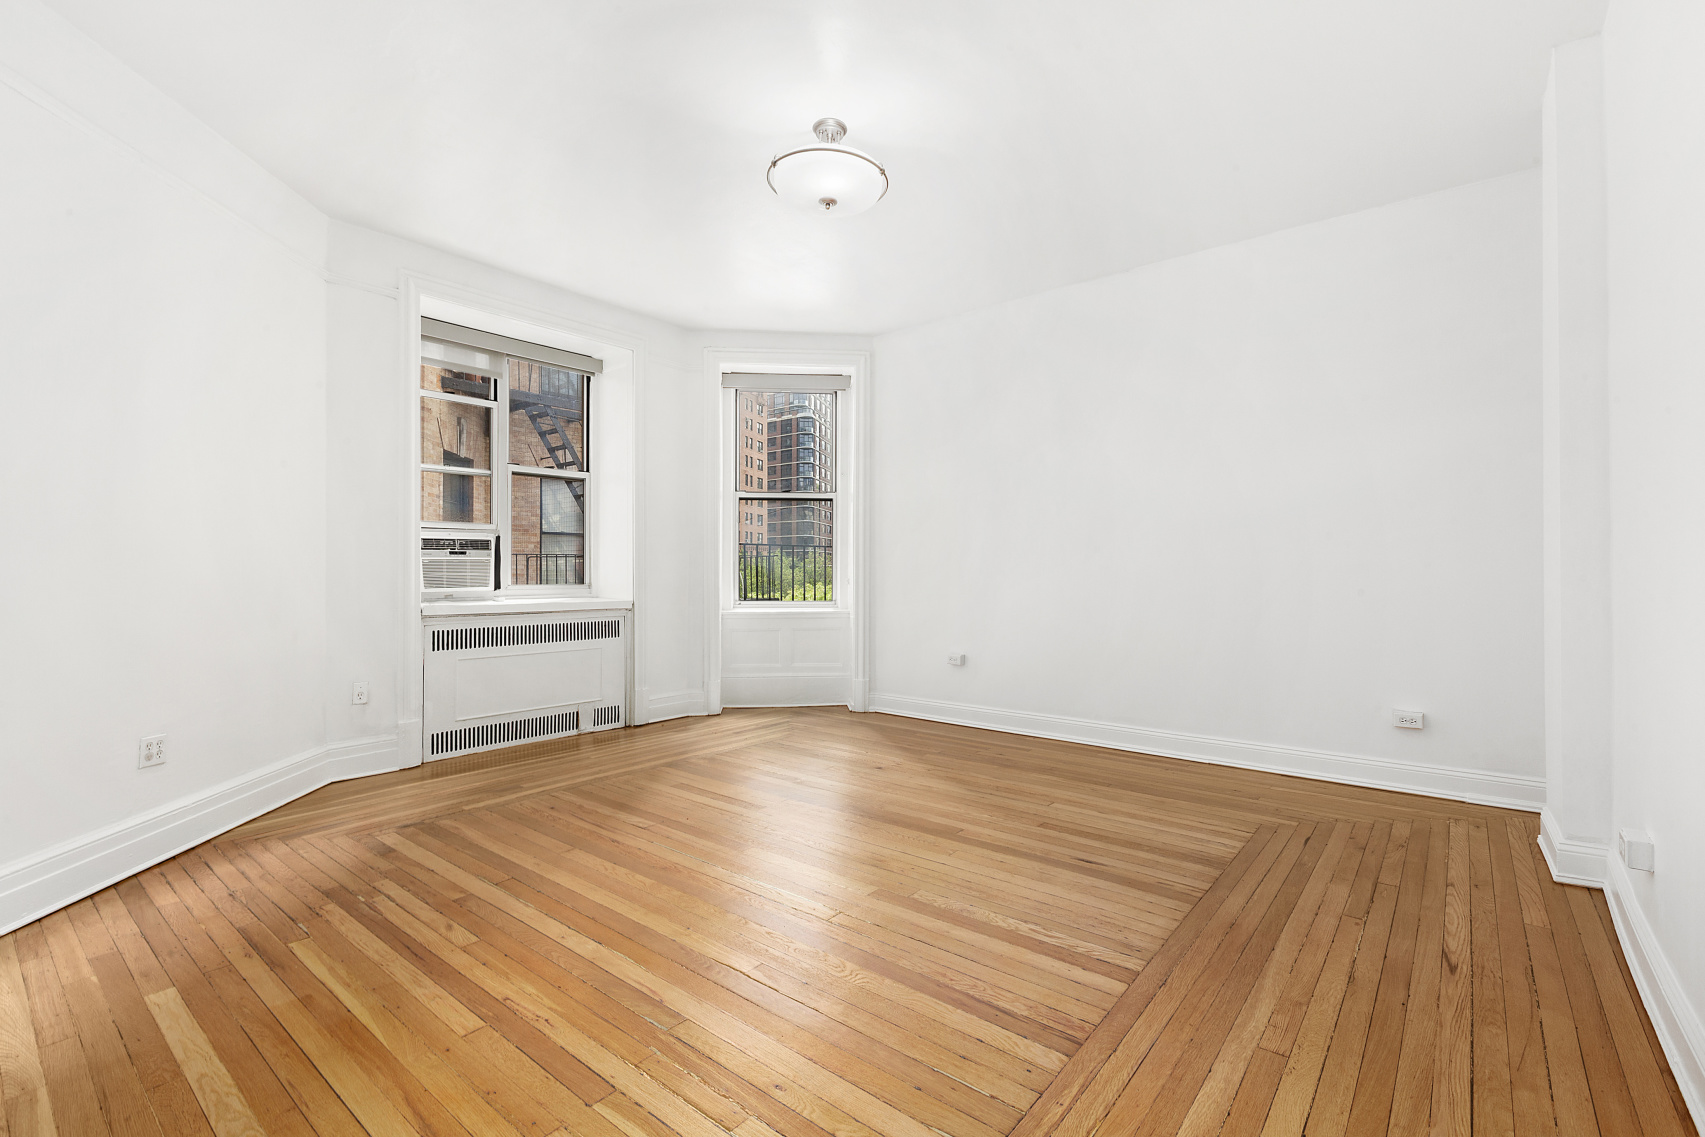 Apartment for sale at 301 West 108th Street, Apt 3-C